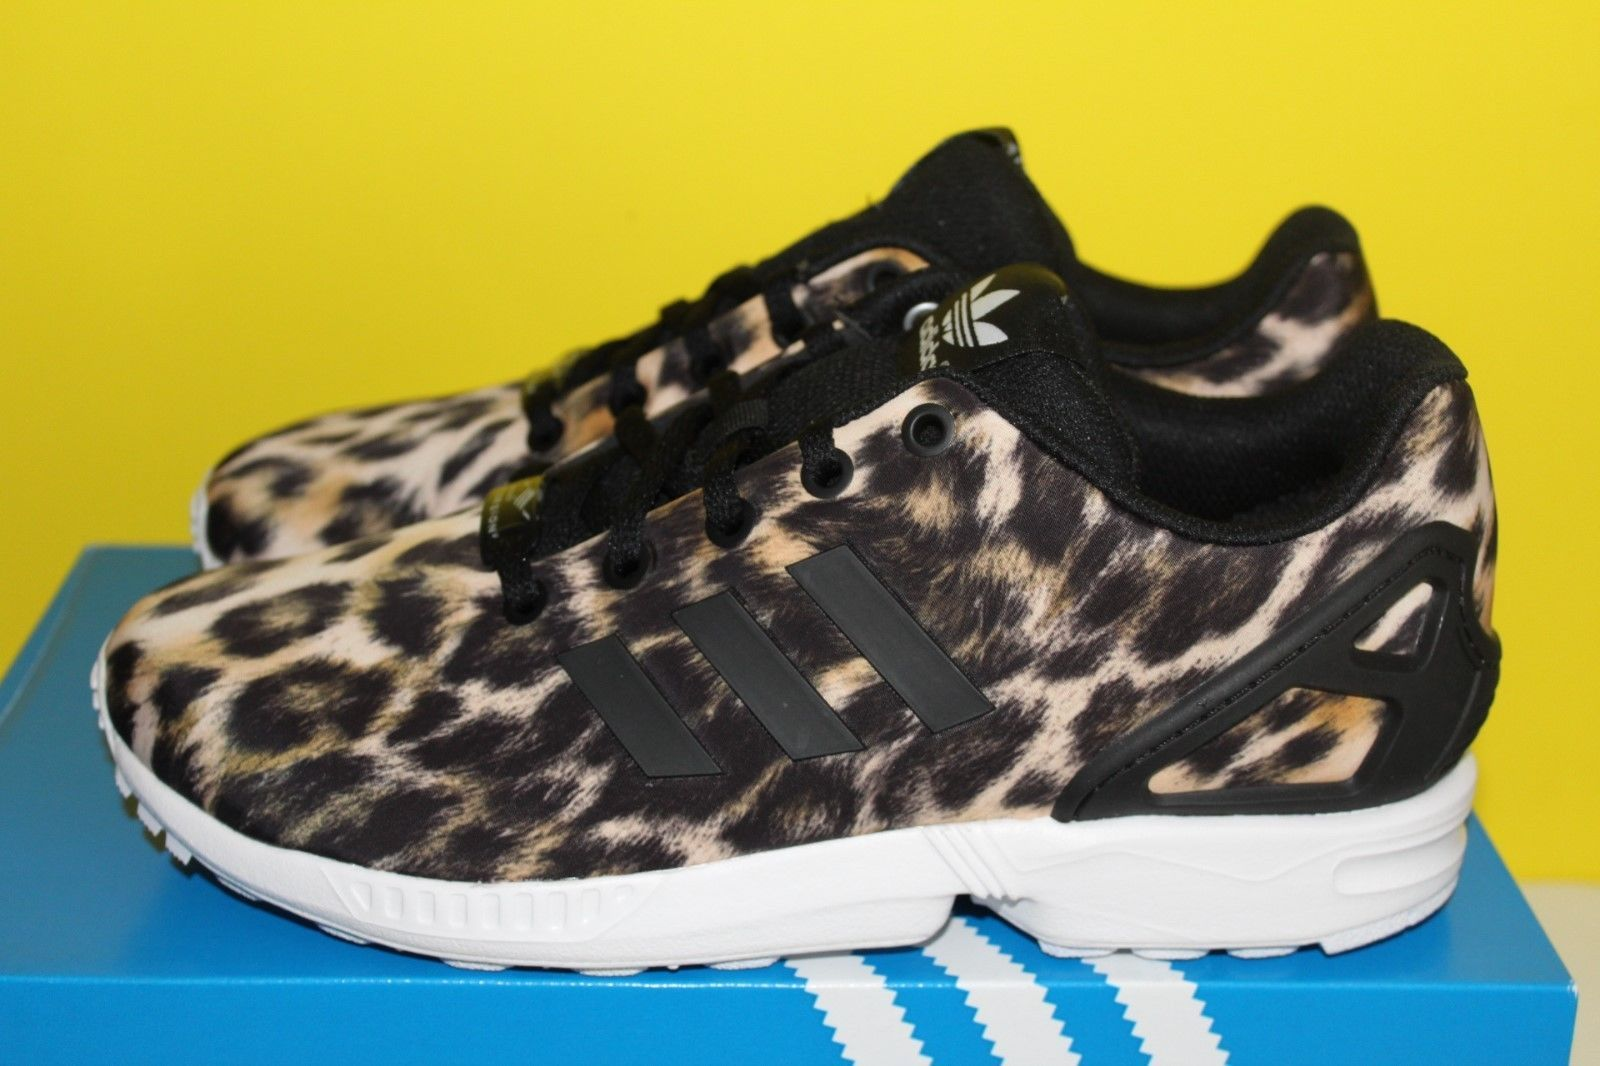 Adidas ZX Flux Leopard Animal Print Torsion Juniors Girls 5 - 7 Trainers  B25642